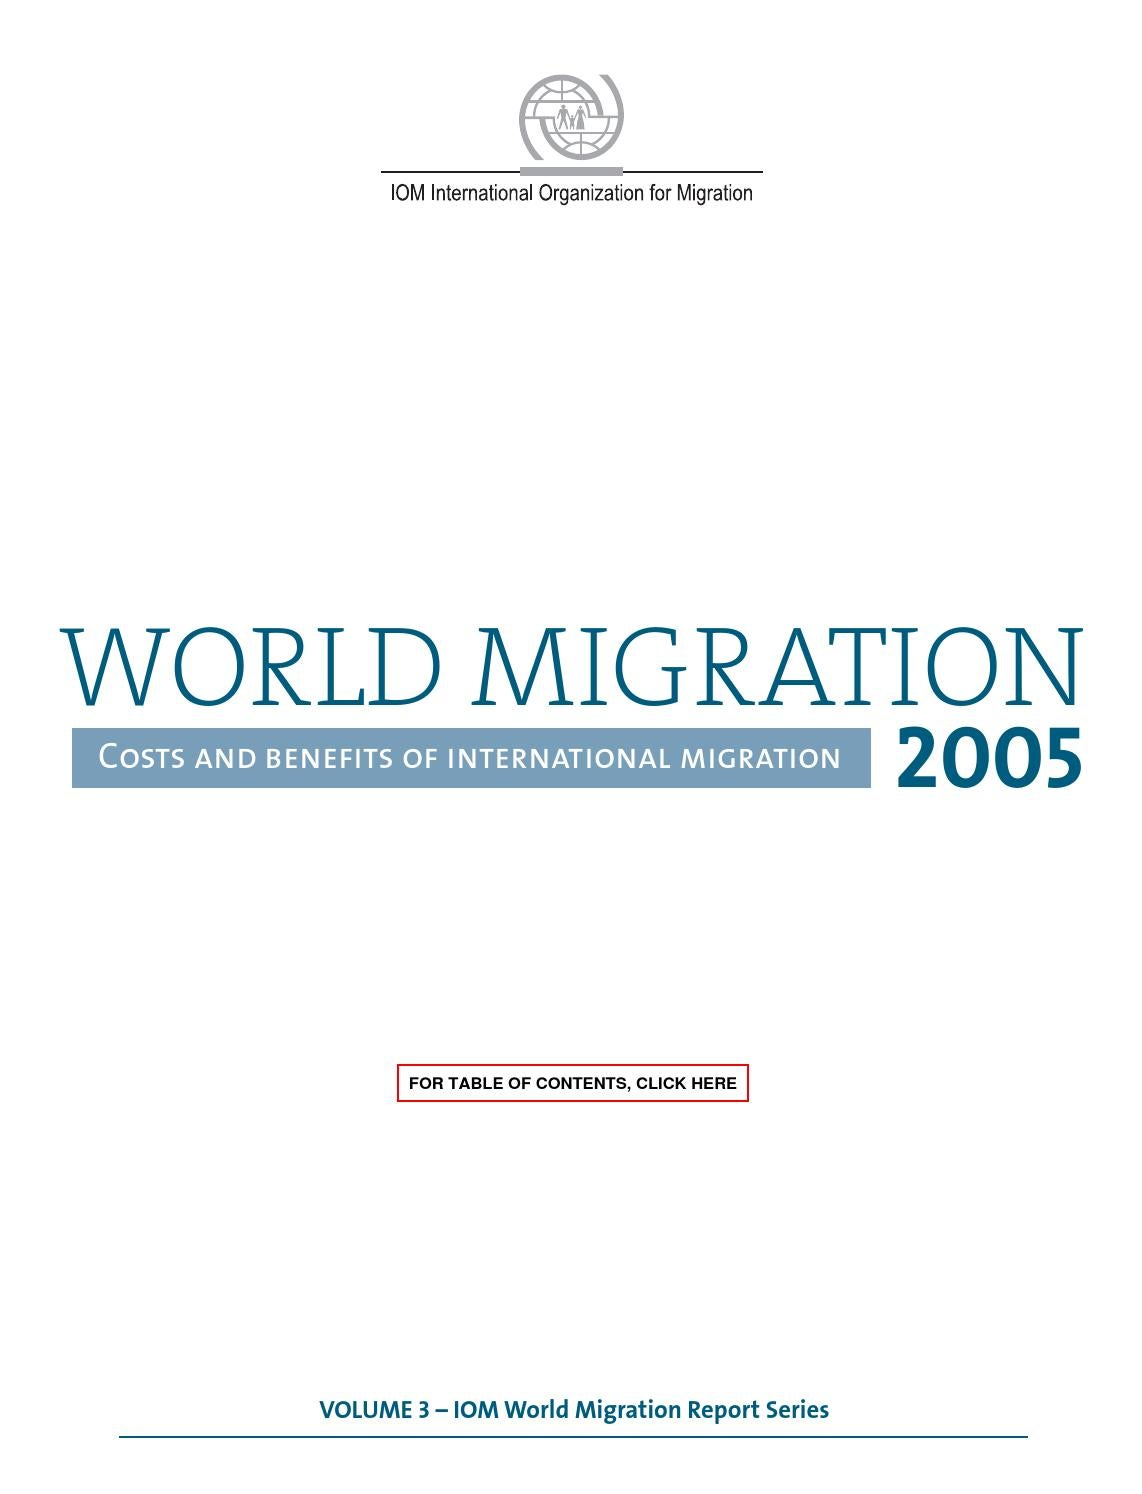 World Migration Report 2005 by International Organization for Migration  (IOM) - issuu